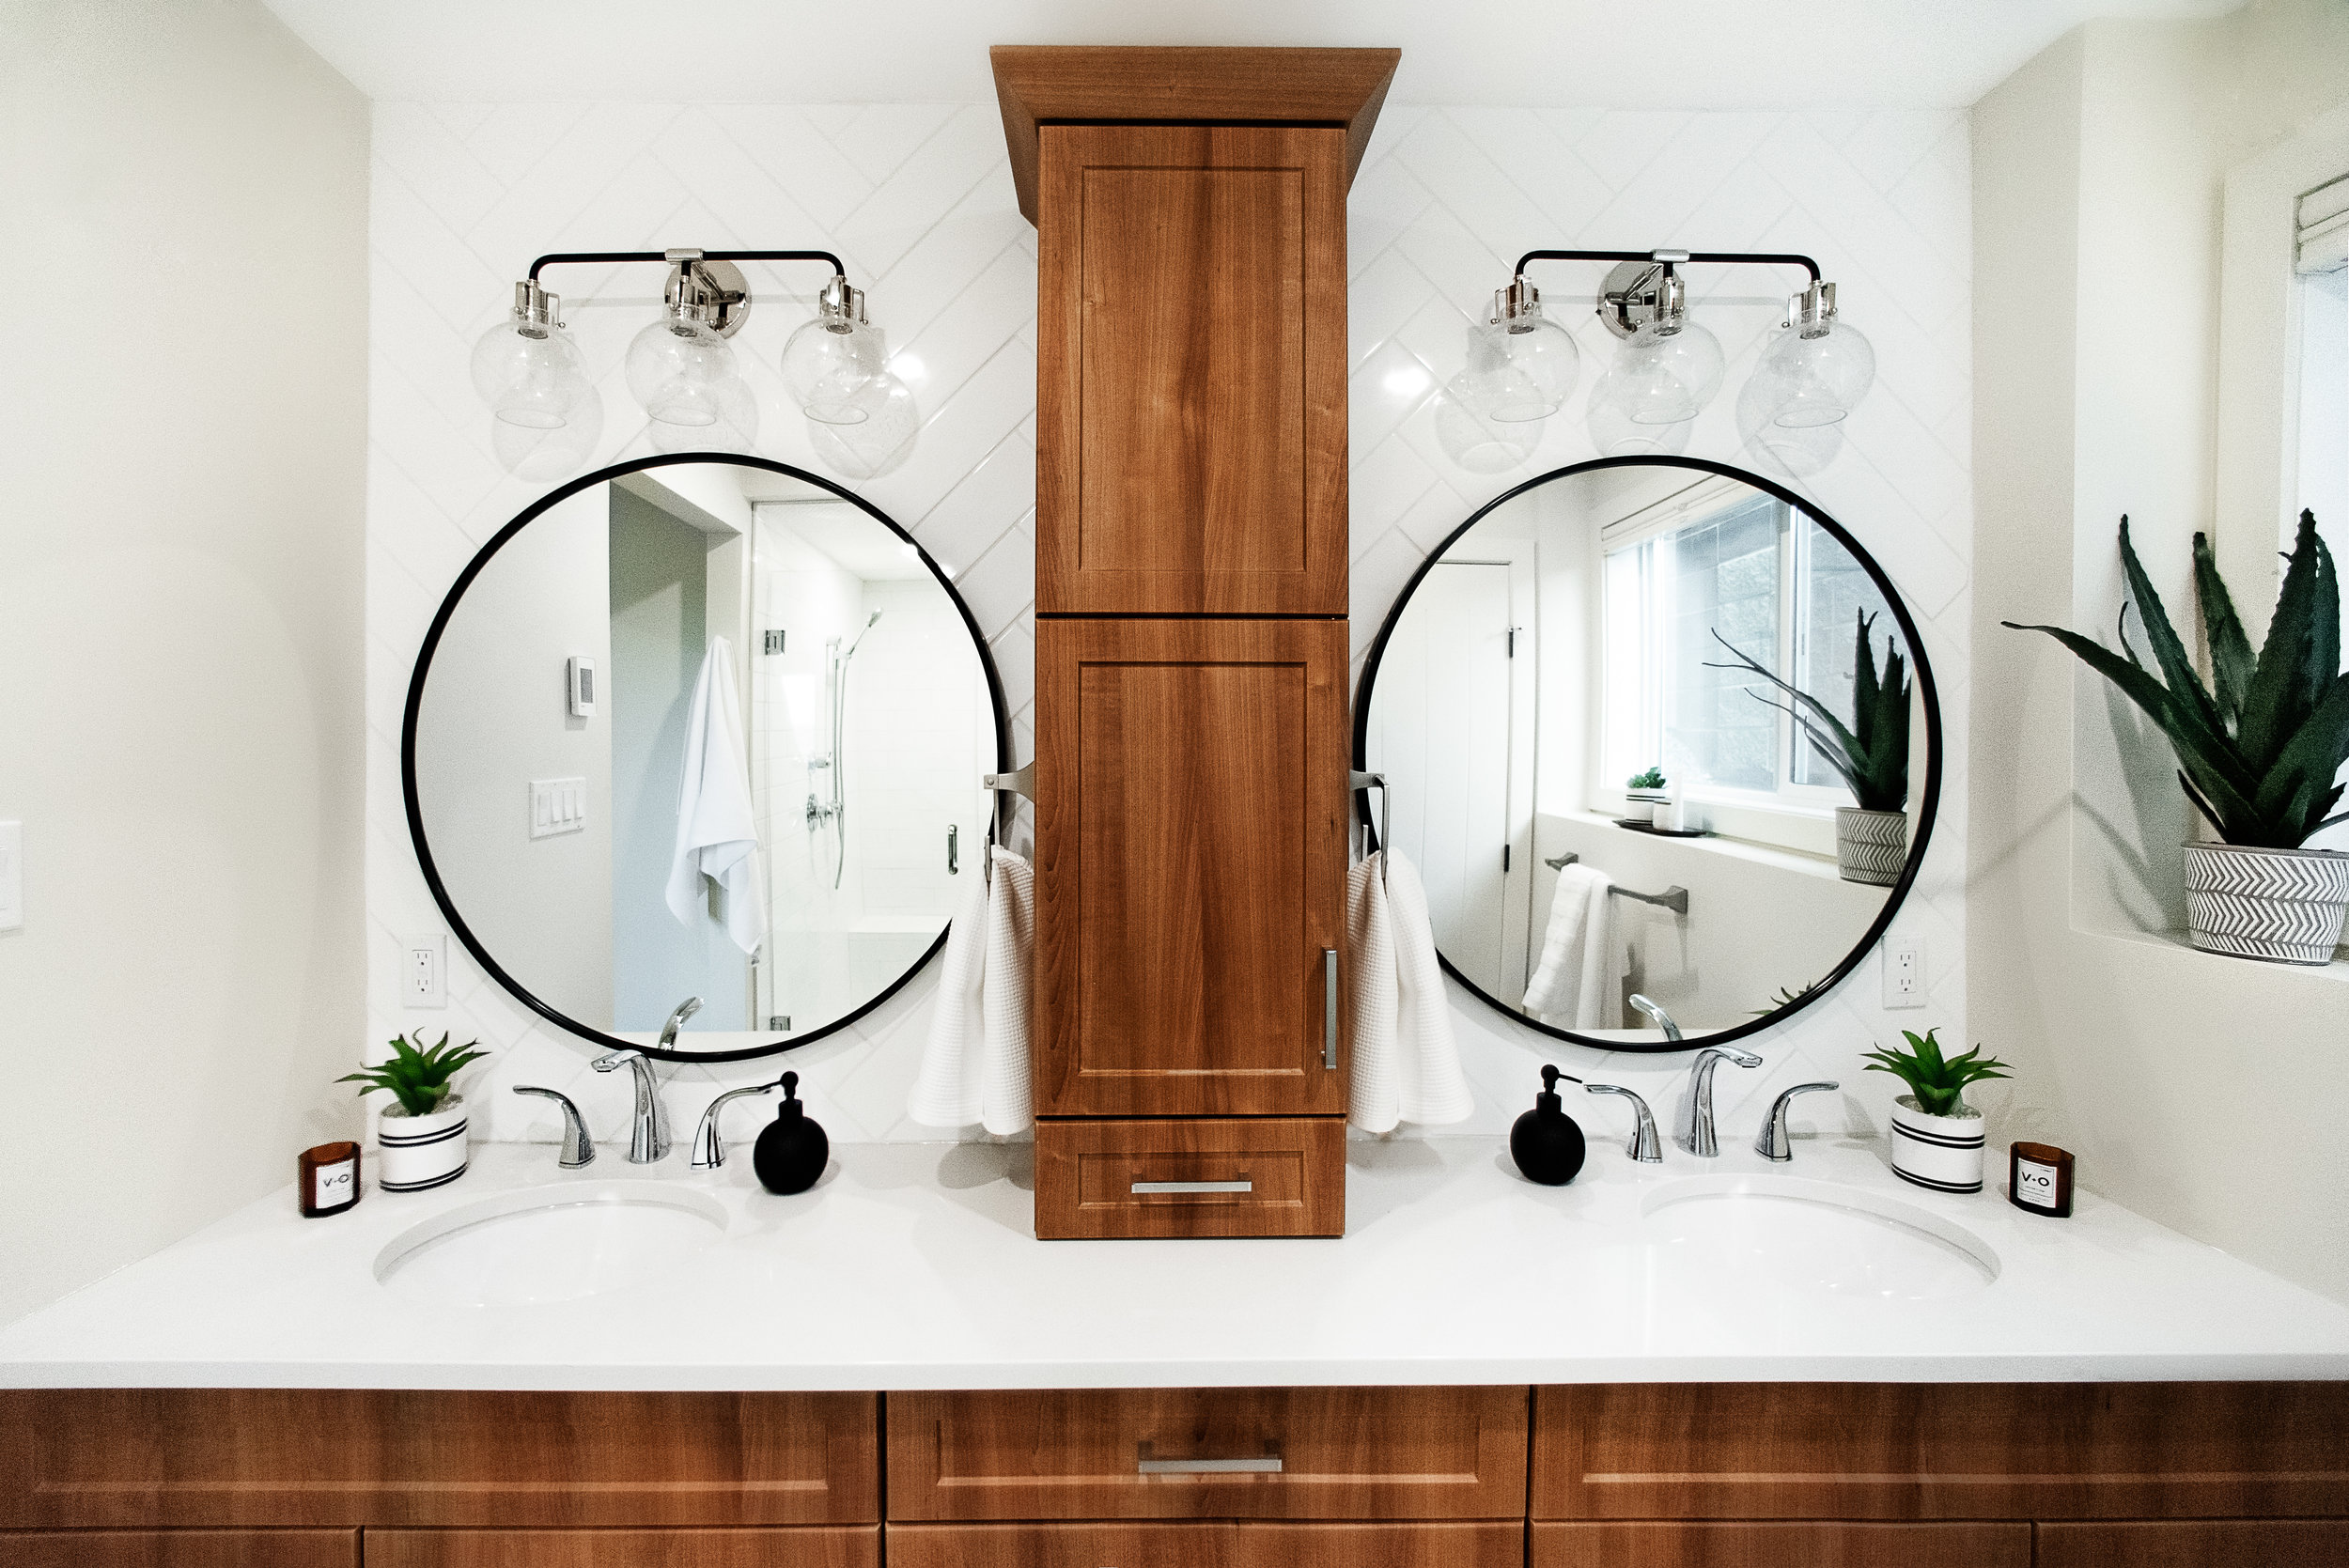 Residential Bathroom - Lethbridge, AB